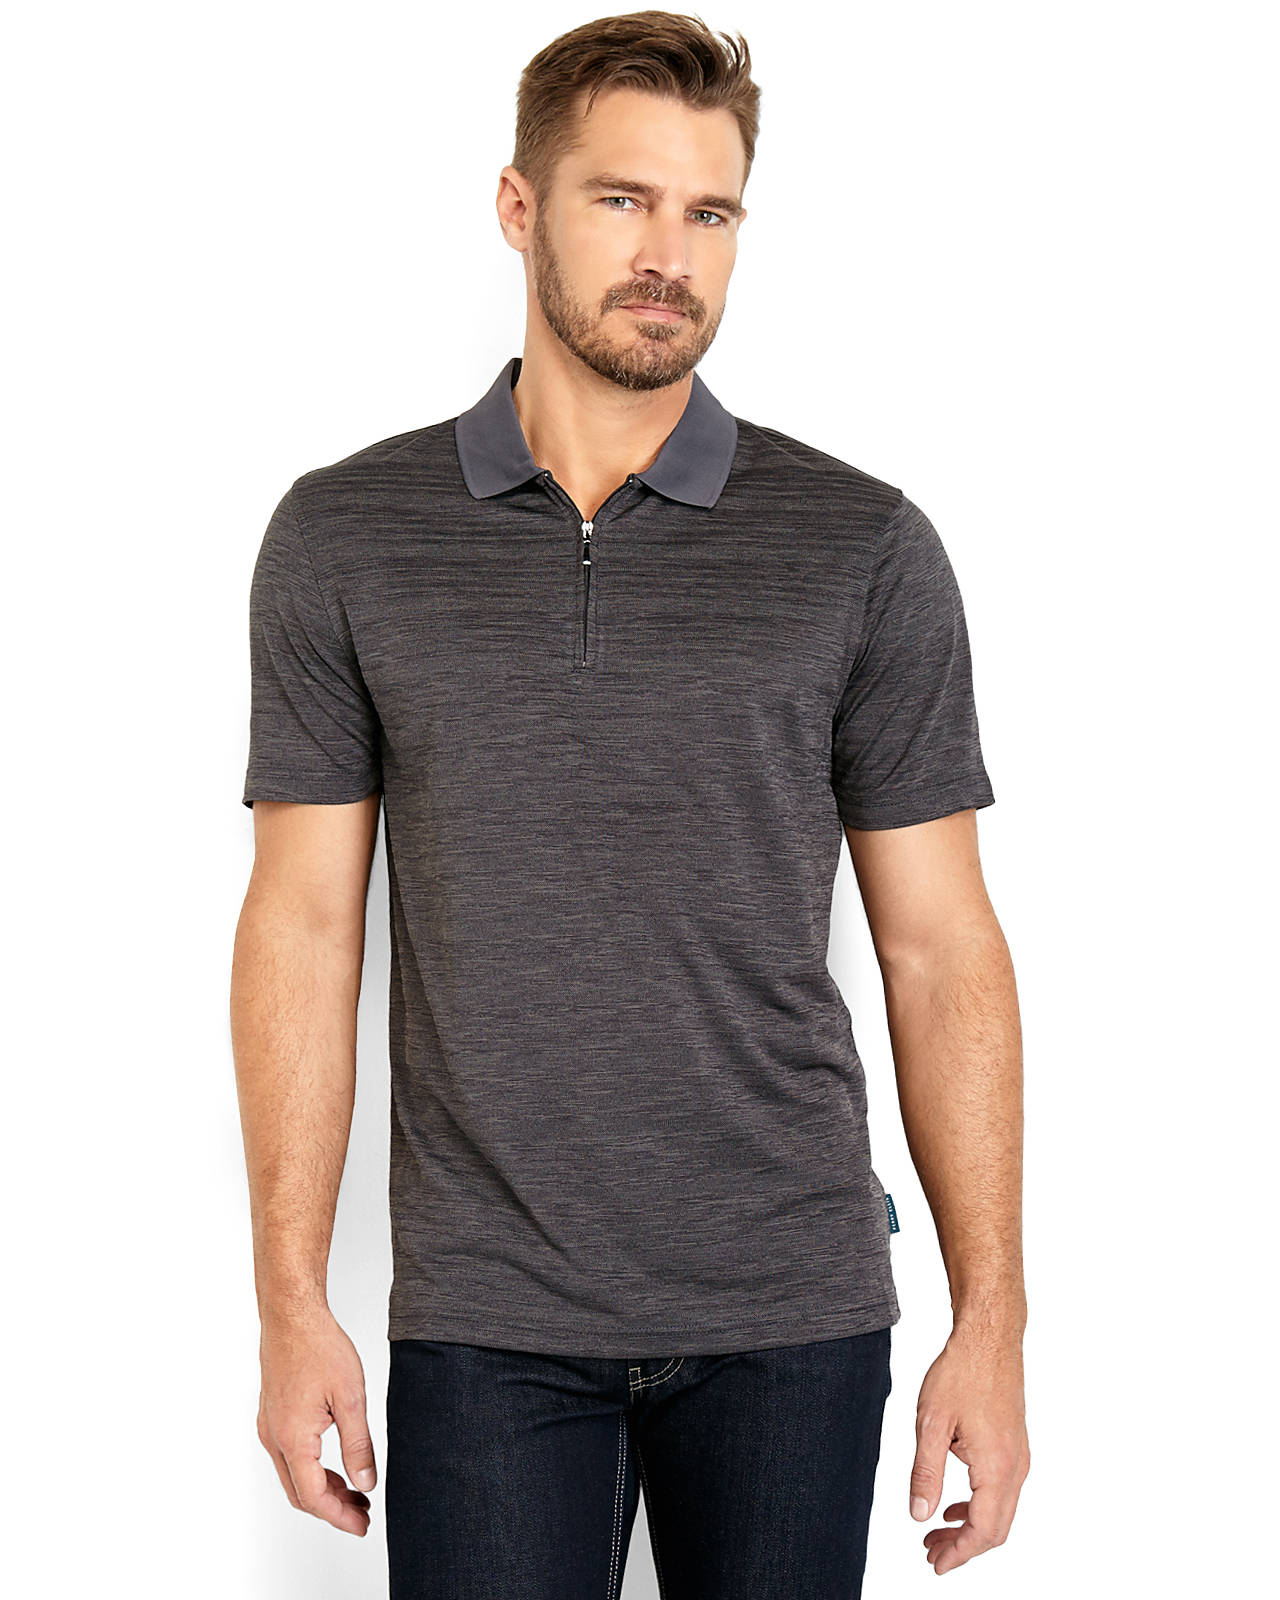 Discount Wide Range Of 2018 Unisex Perry Ellis® Quarter Zip Polo Sale  Excellent Fast Delivery